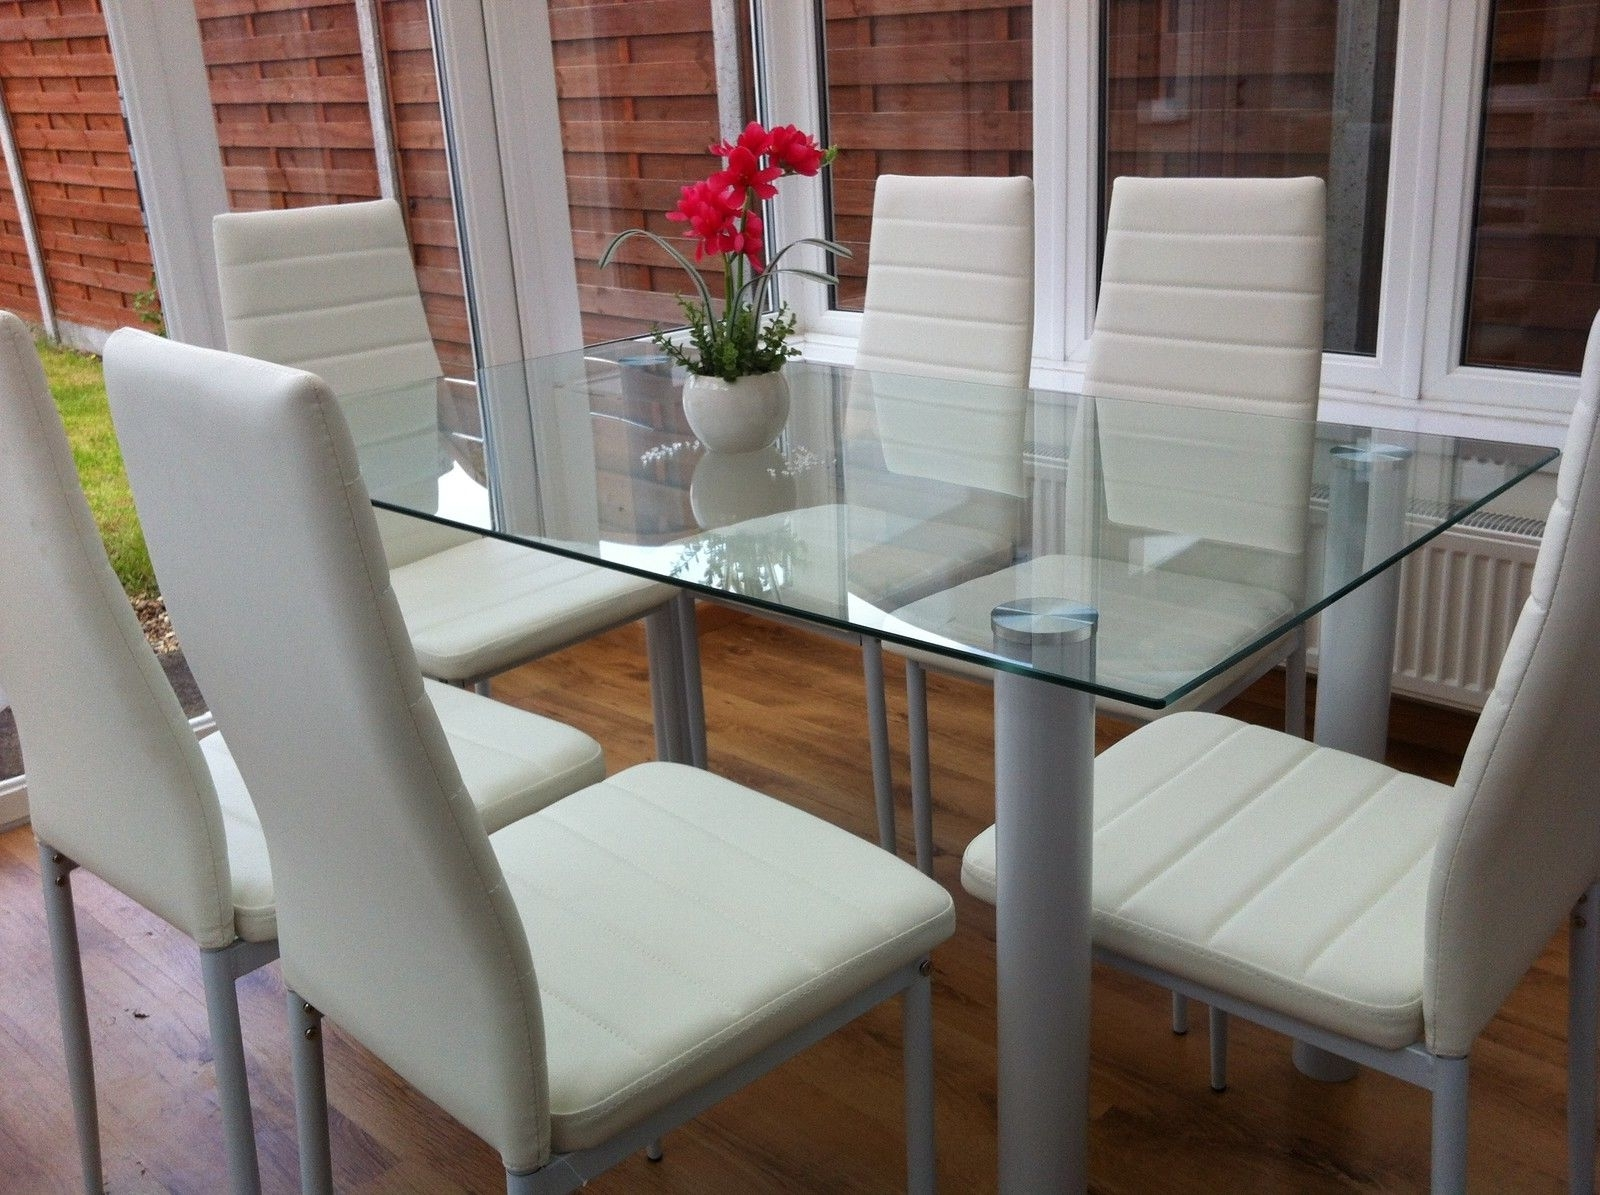 Stunning Glass Dining Table Set And With 4 Or 6 Faux Leather Chairs Regarding 2017 White Glass Dining Tables And Chairs (View 13 of 25)